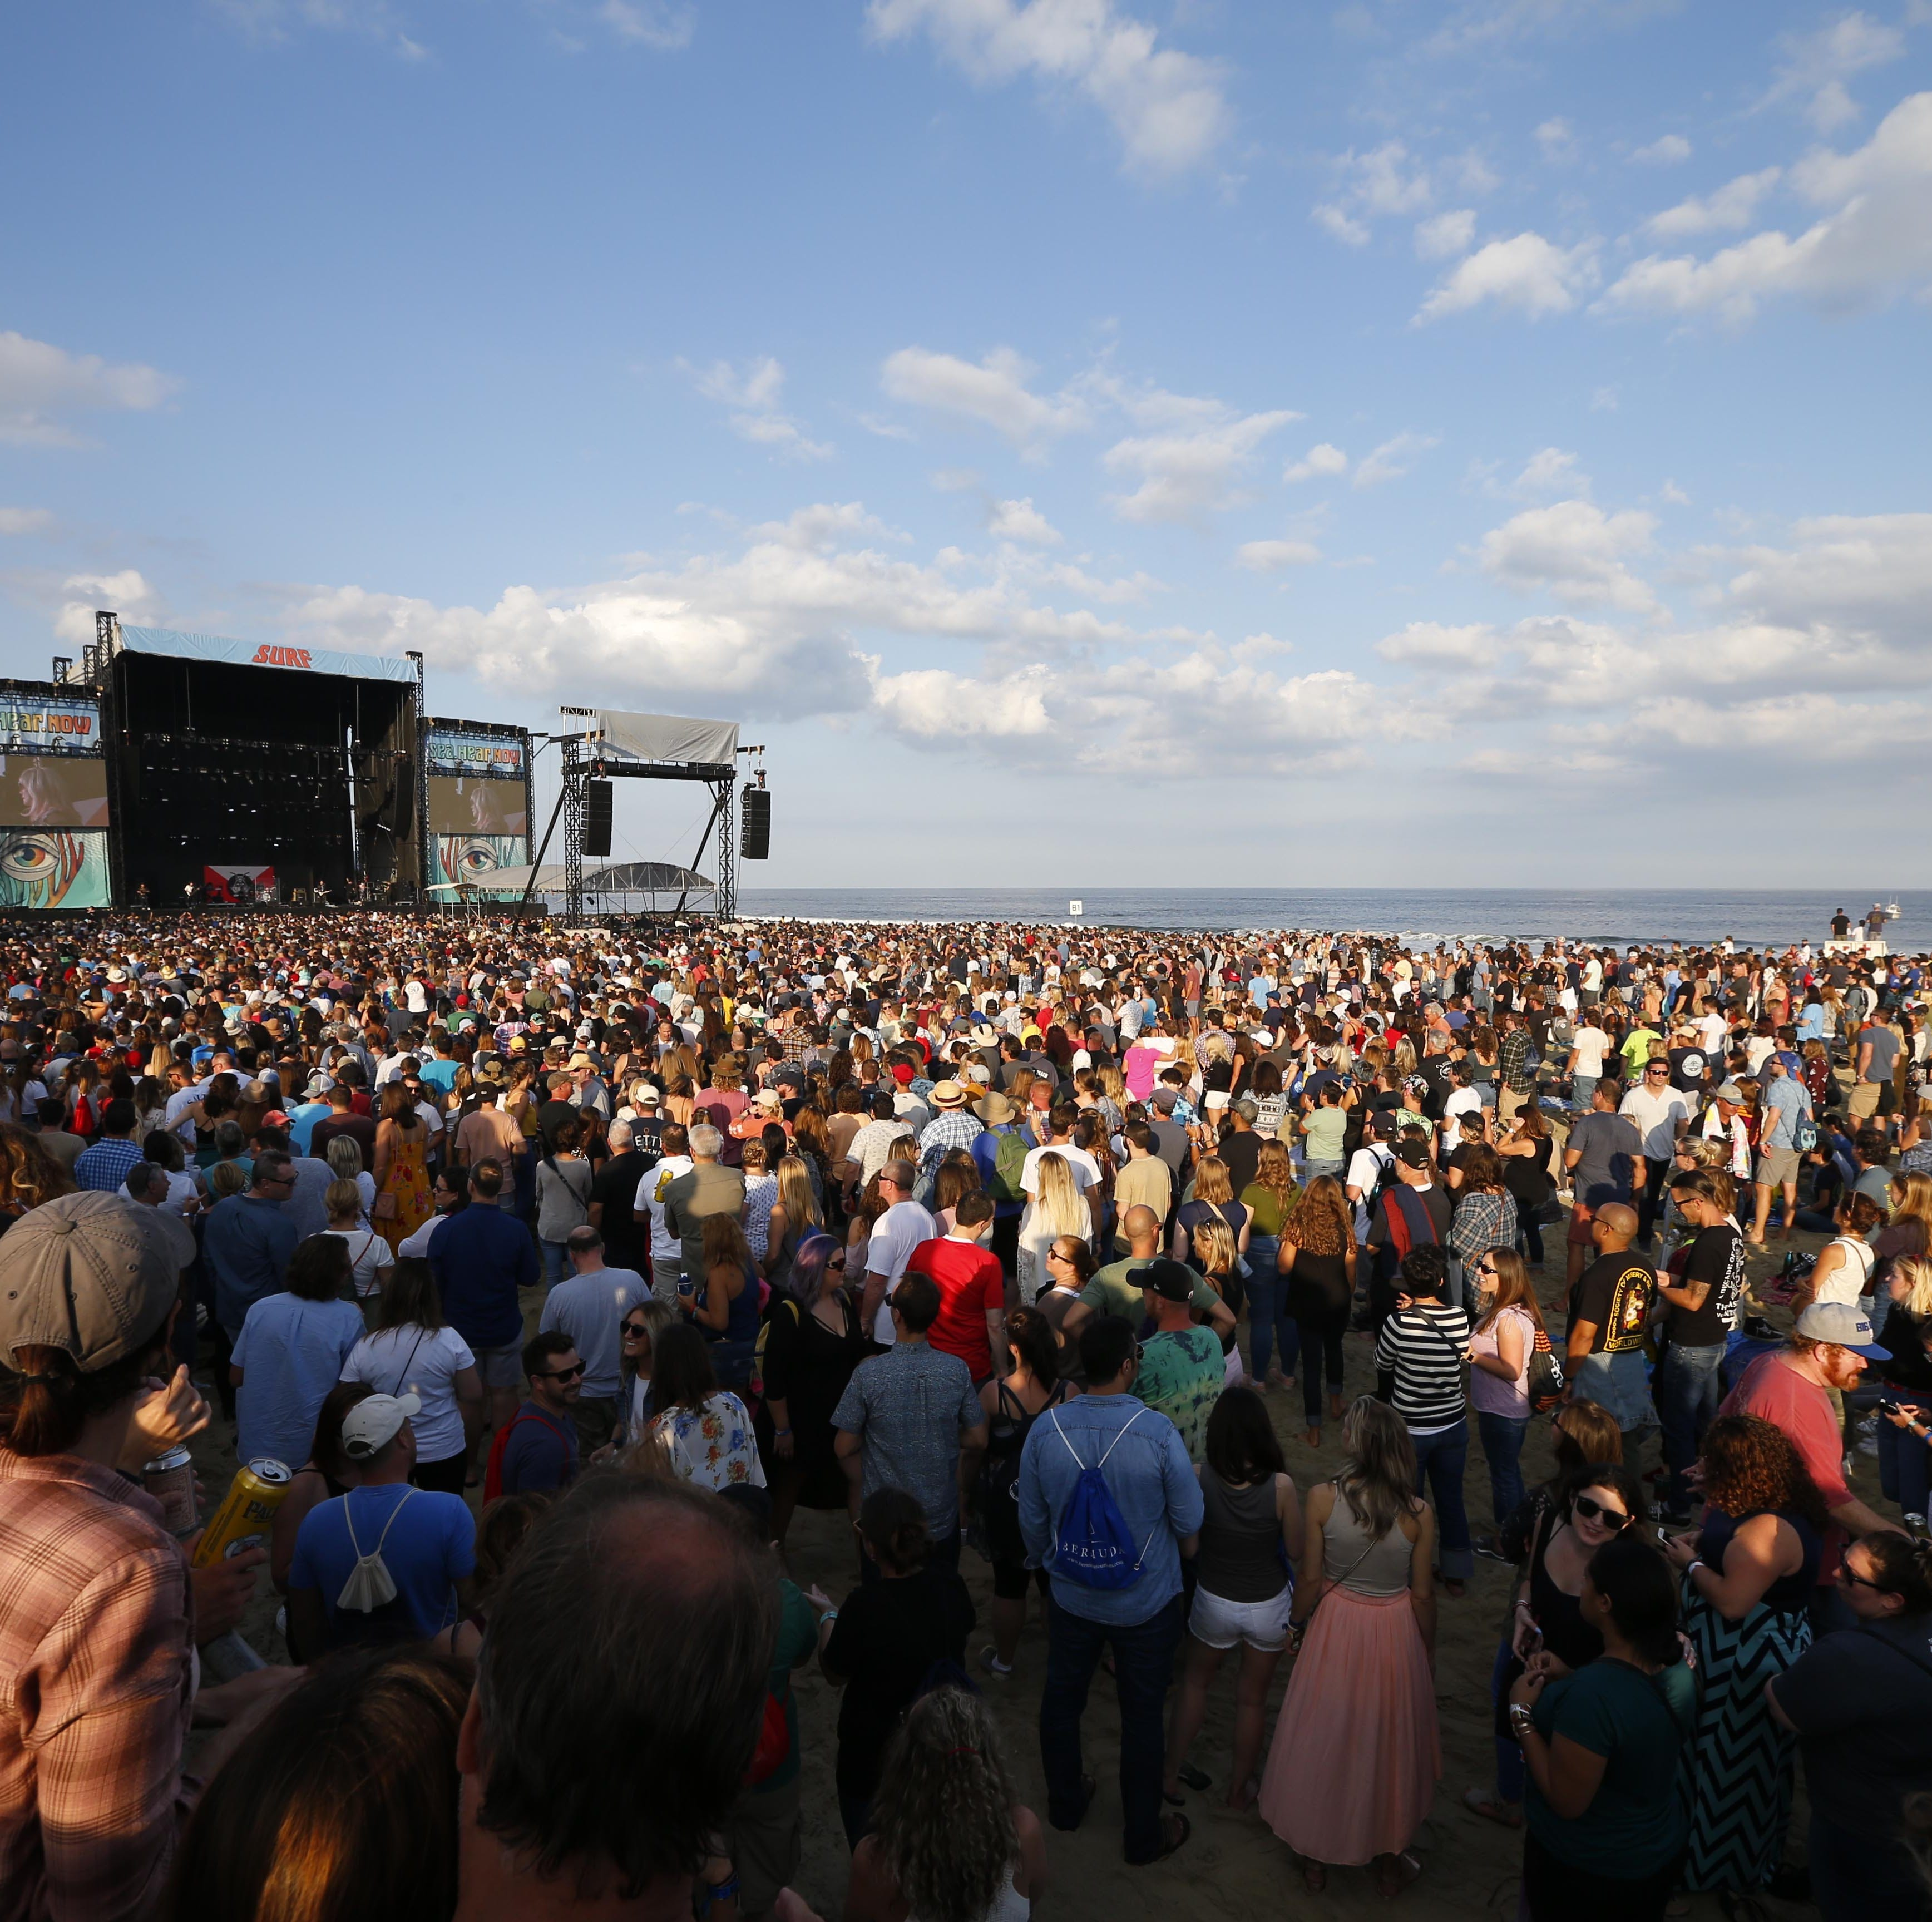 Sea.Hear.Now music fest coming back to the beach in Asbury Park in 2019